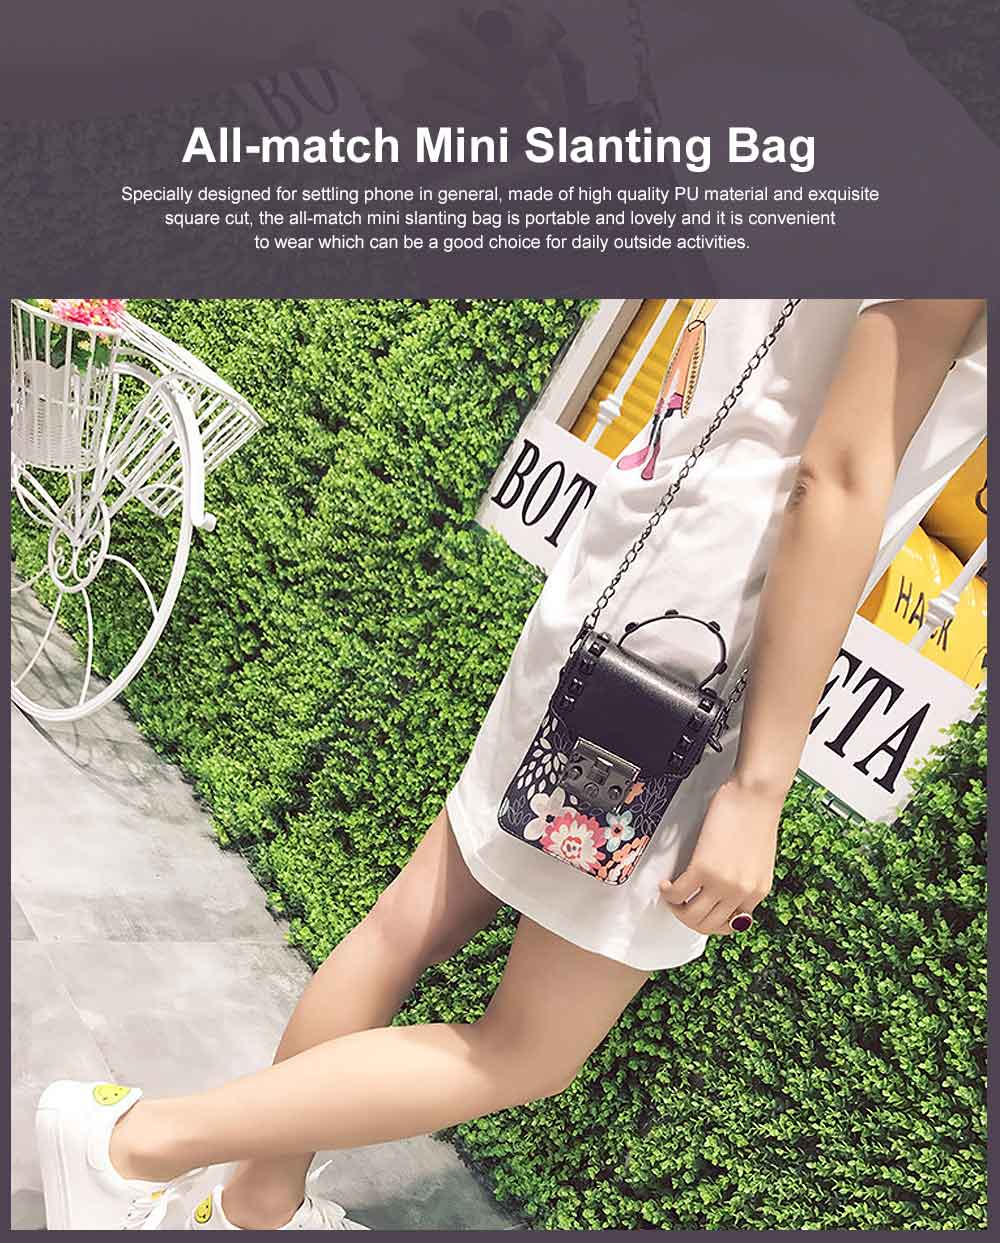 Personality Rivet Mobile Phone Shoulder Bag, All-match Mini Slanting Bag for Dating, Shopping, Daily Fahsion Mini Bag 0